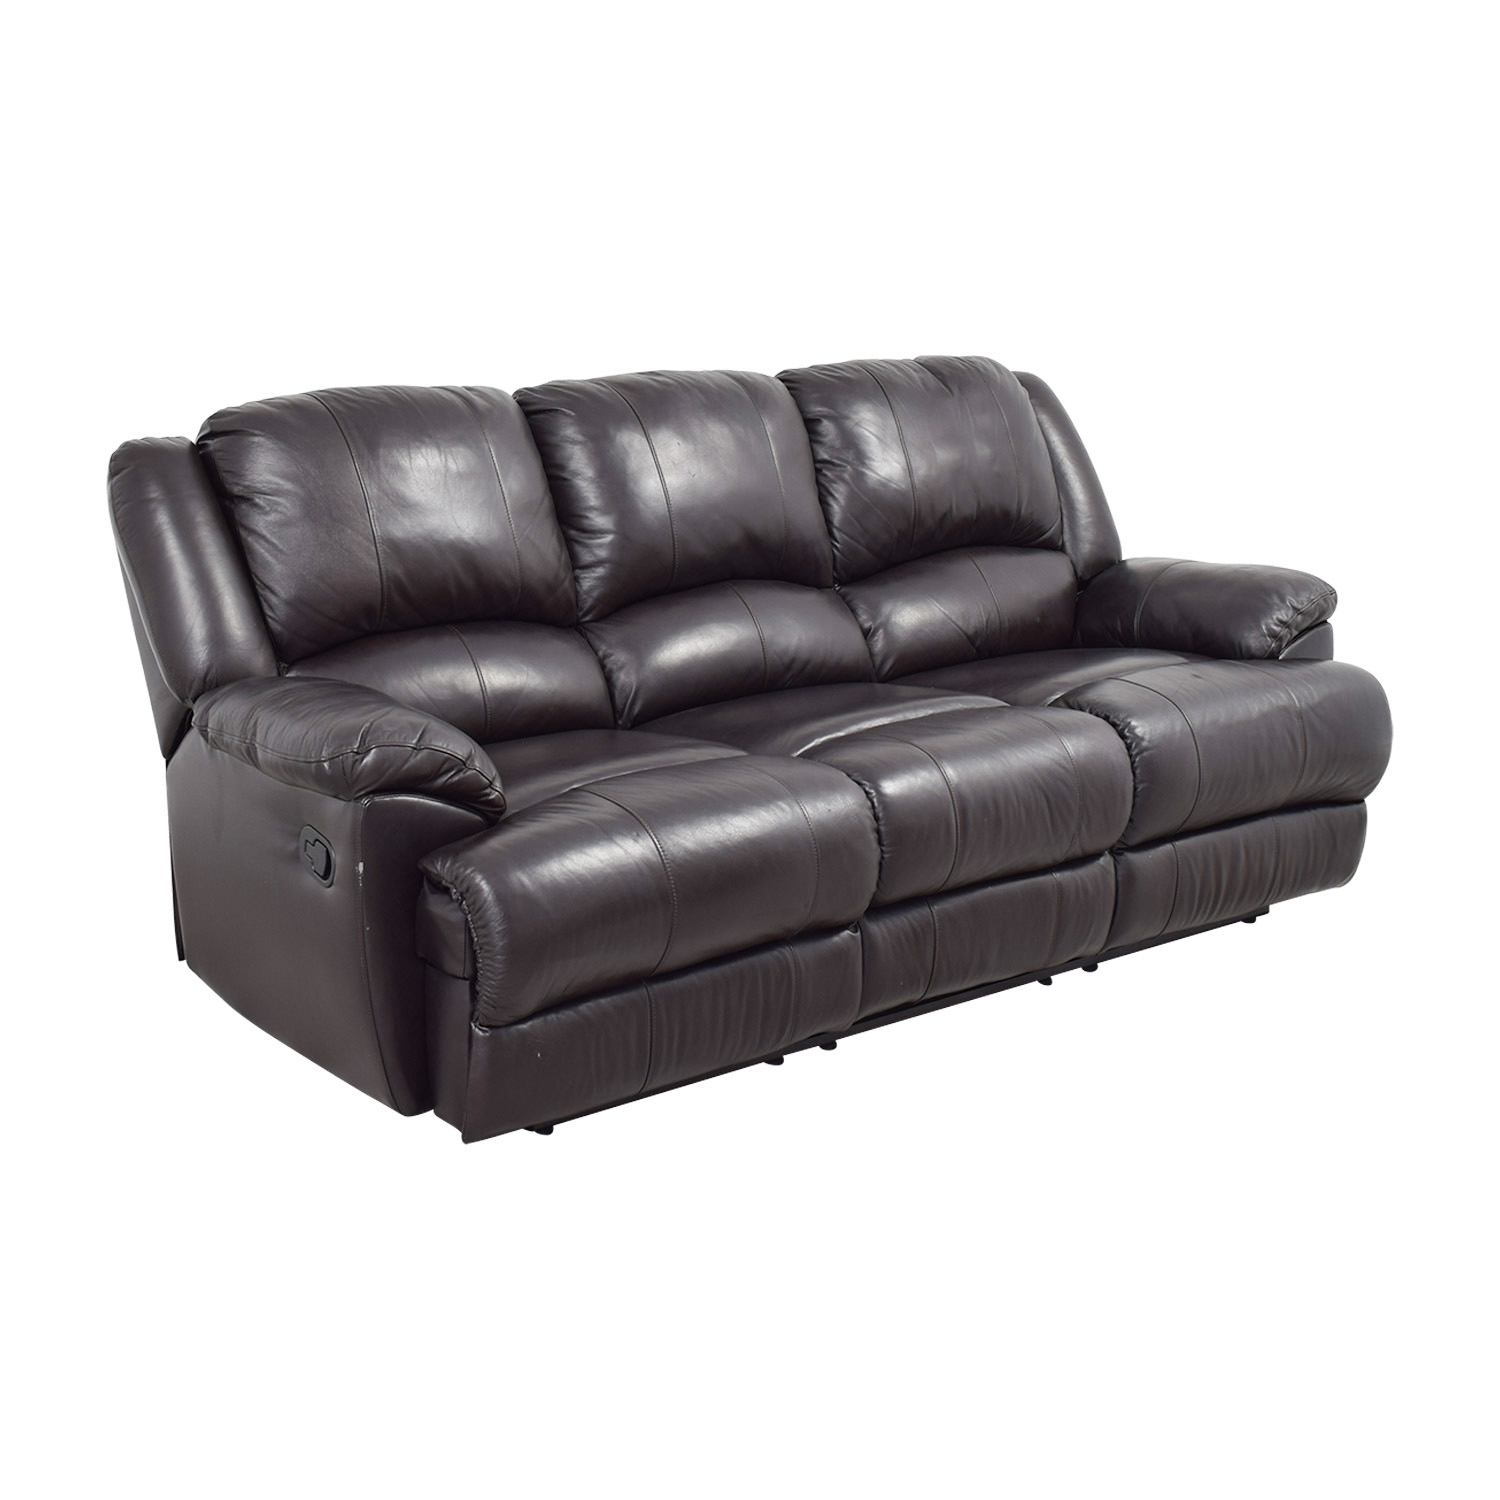 ashley leather sofa bed sleeper with air mattress 76 off furniture black